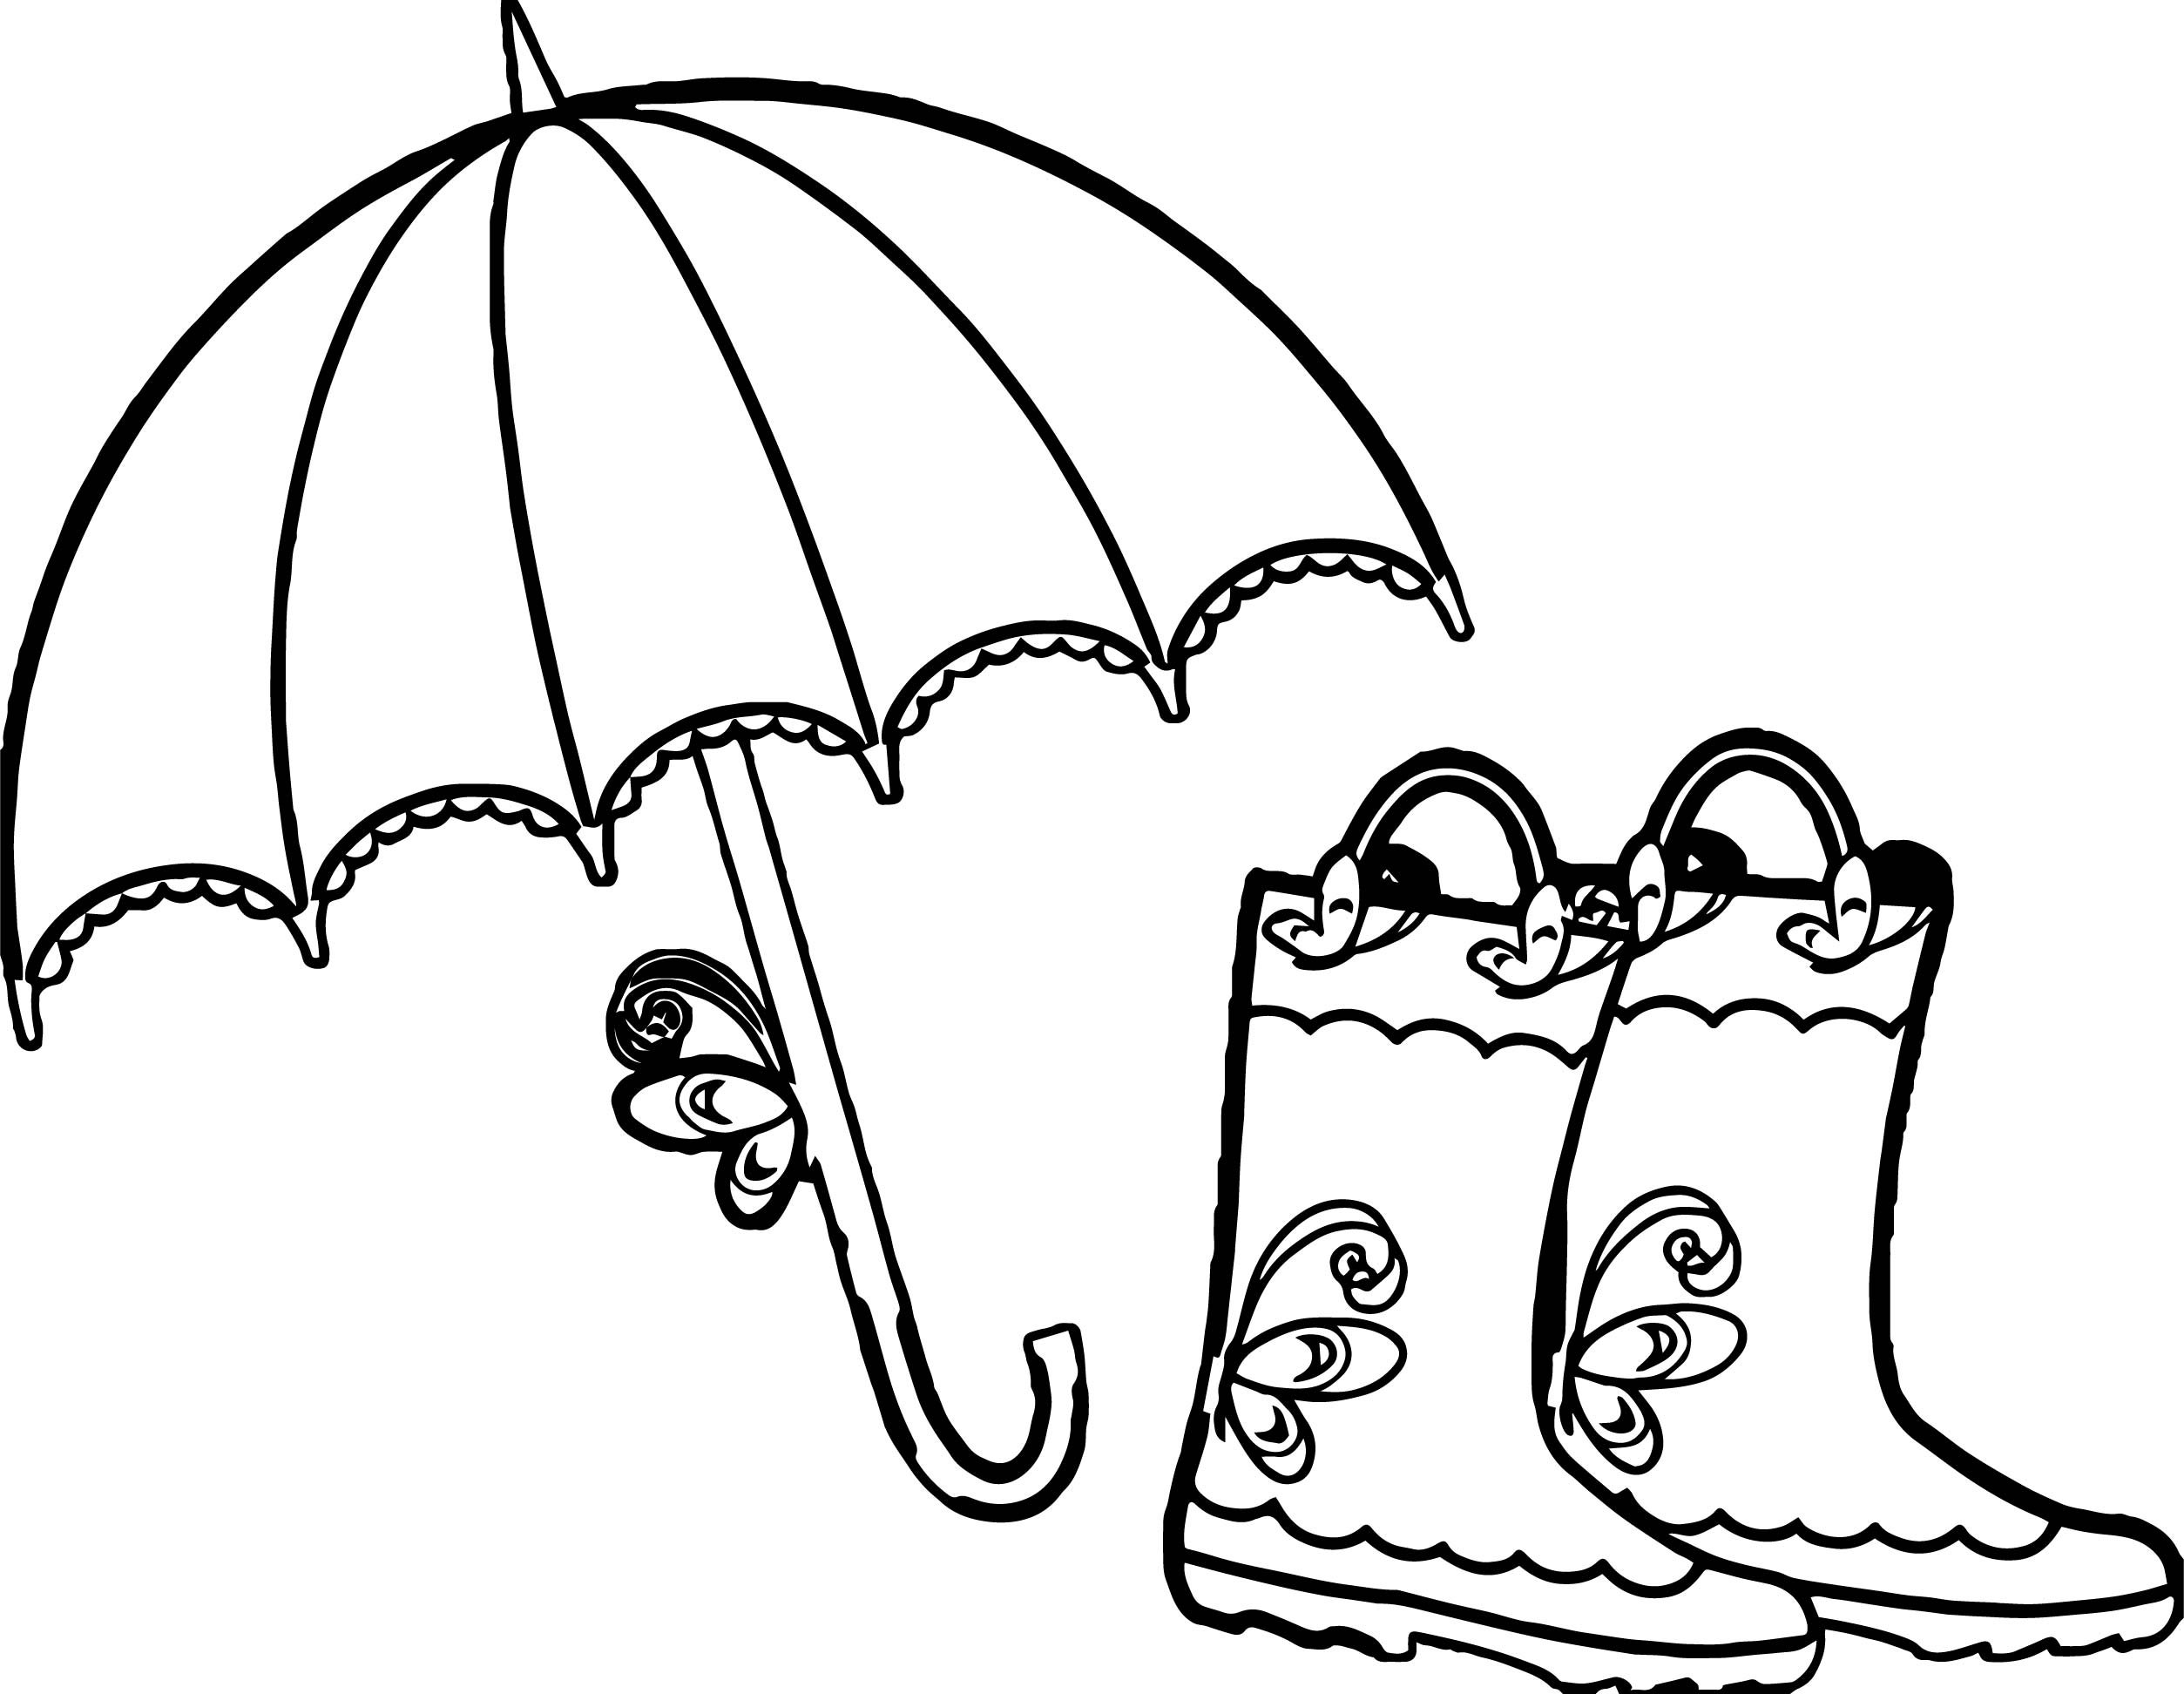 Umbrella And Boots April Coloring Page